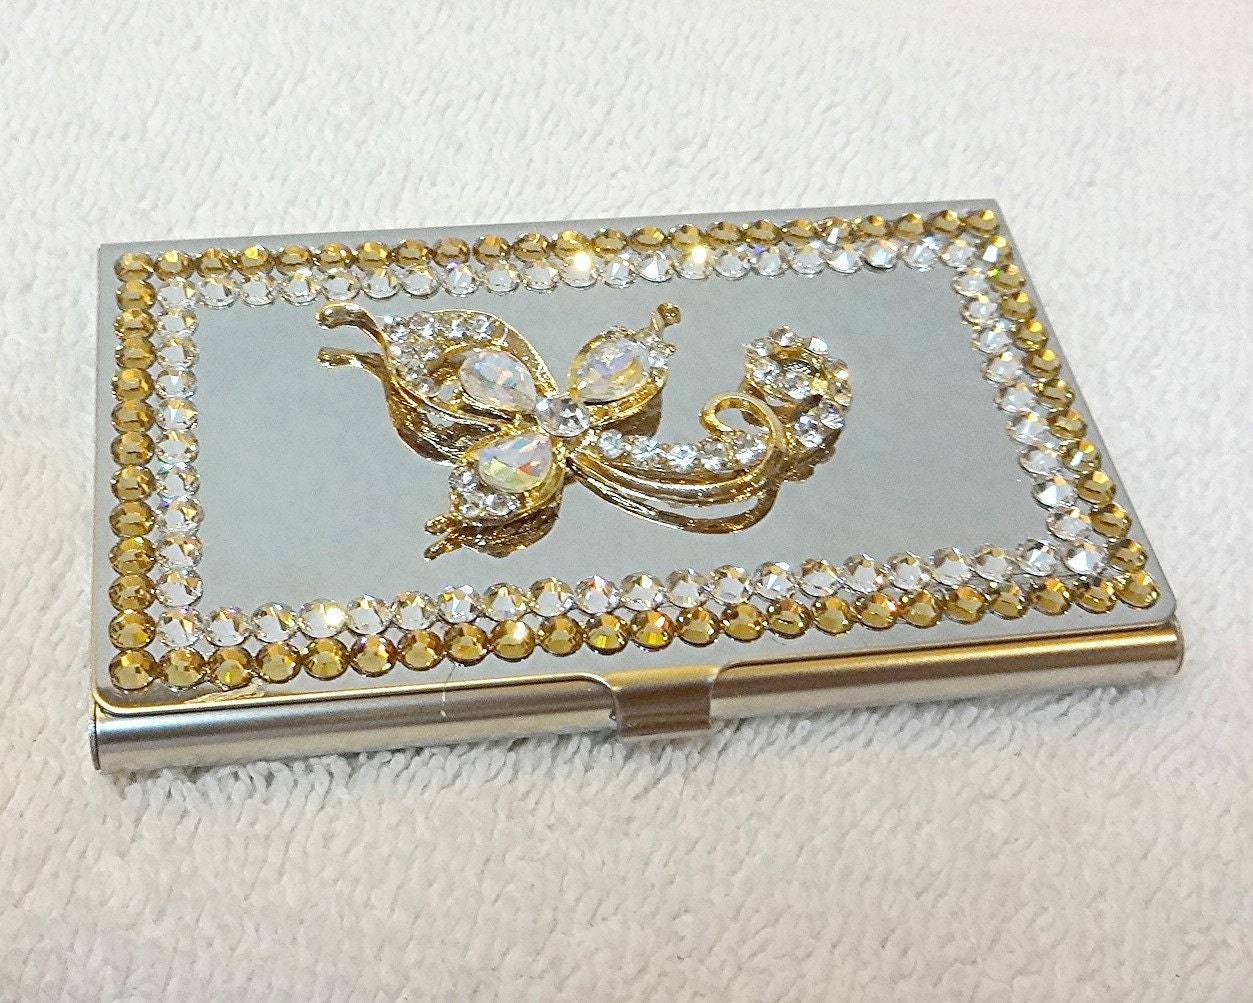 Swarovski business card holder gold and silver rhinestone flower swarovski business card holder gold and silver rhinestone flower business card case gift for colourmoves